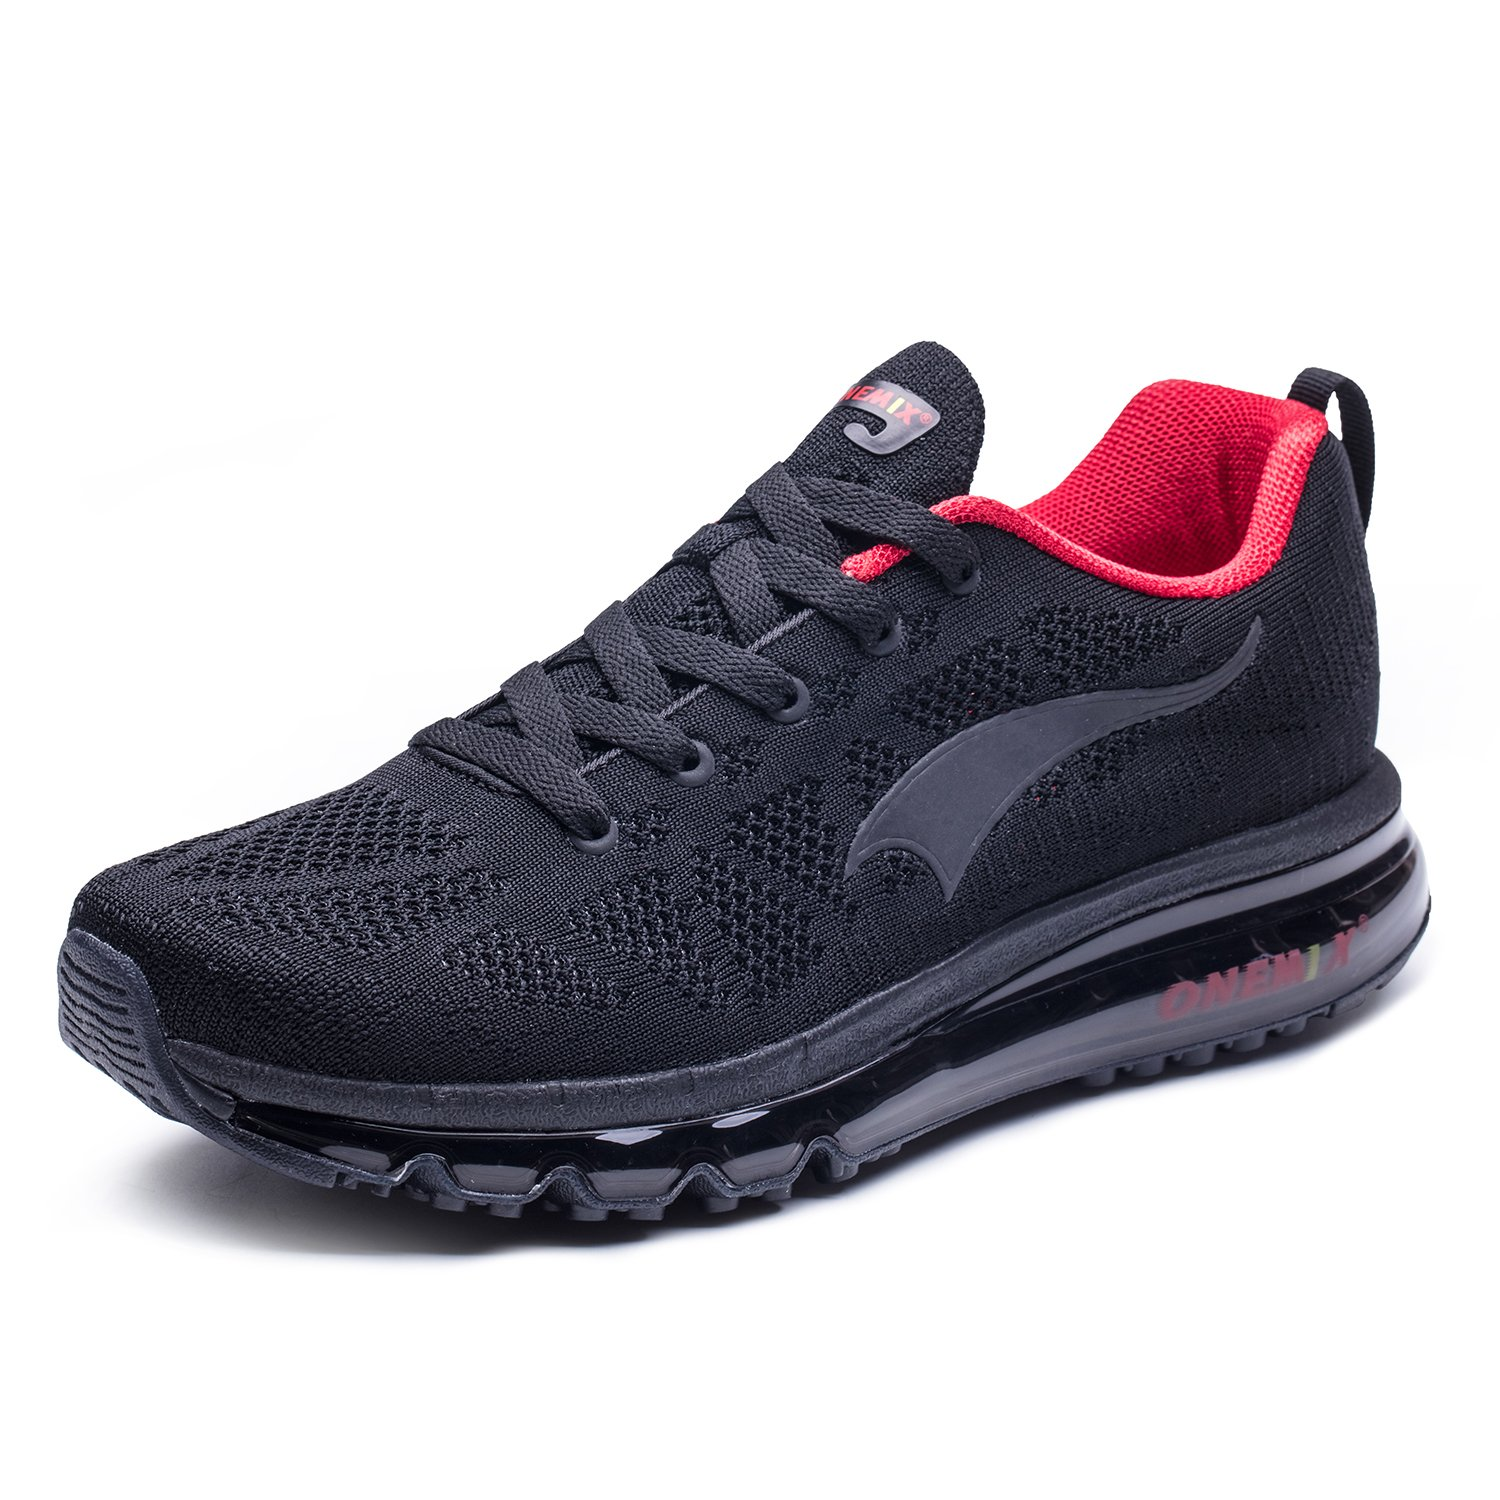 ONEMIX Men's Air Cushion Outdoor Sport Running Shoes Casual Sneakers B07CVJBXG8 8.5 D(M)US 10.43inch|Black / Red